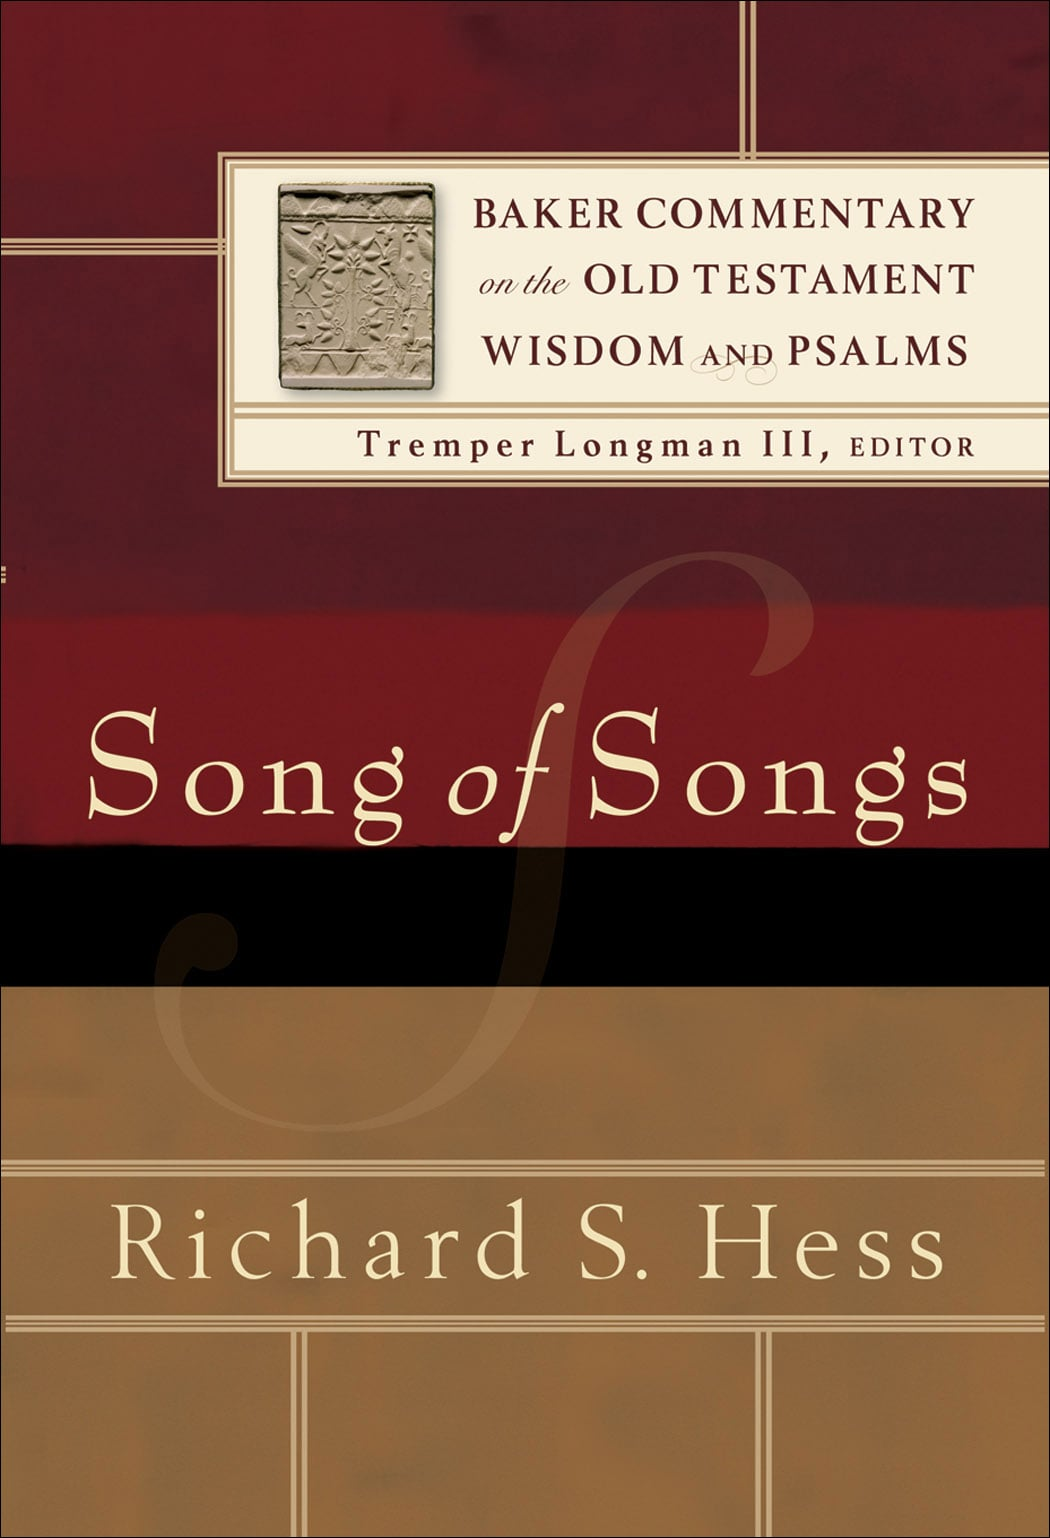 Hess_Song of Songs.jpg